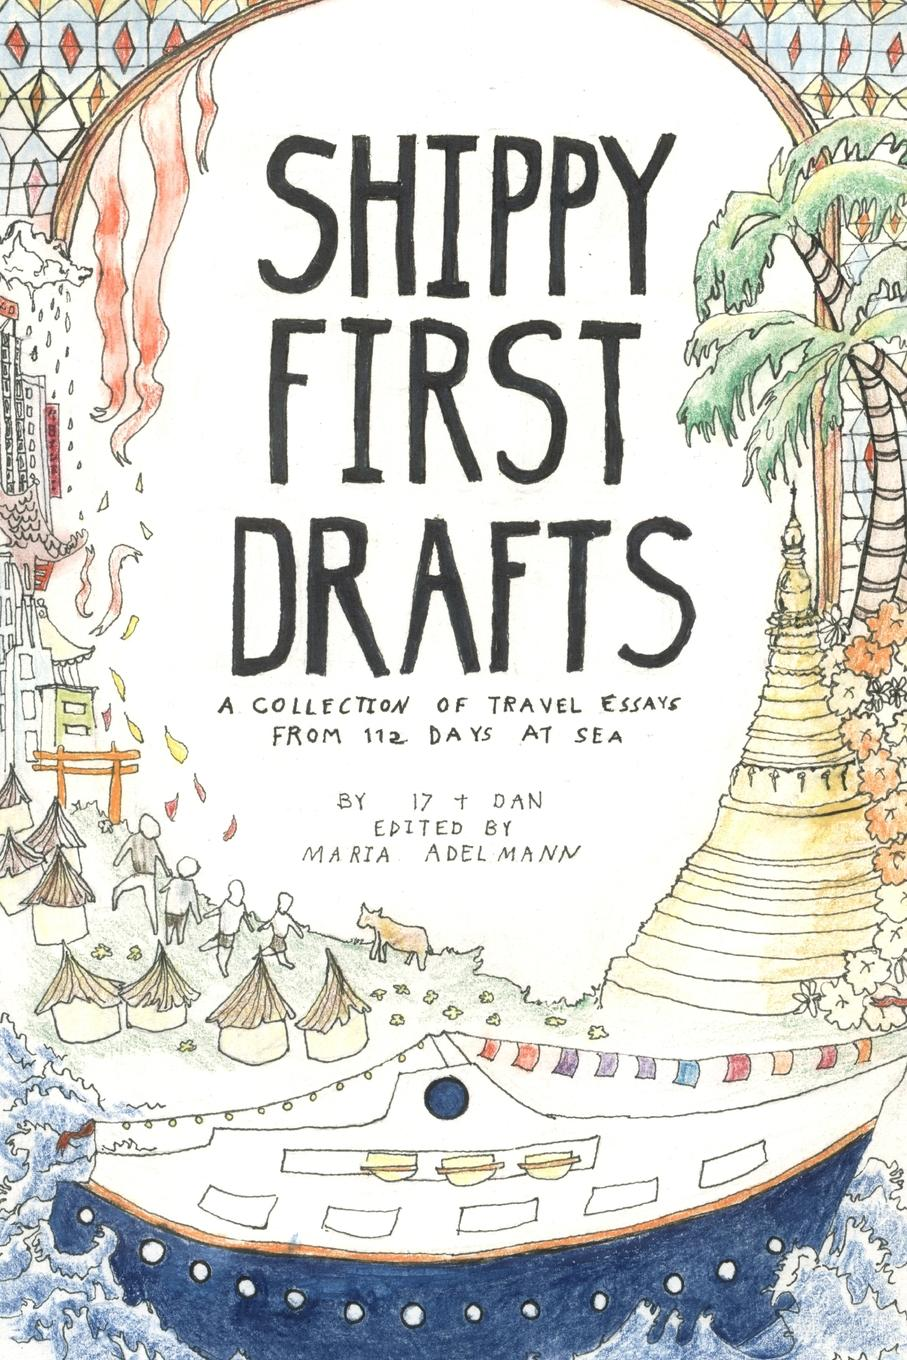 Maria Adelmann, Michele Berry, Holiday Coles Shippy First Drafts. A Collection of Travel Essays from 112 Days at Sea